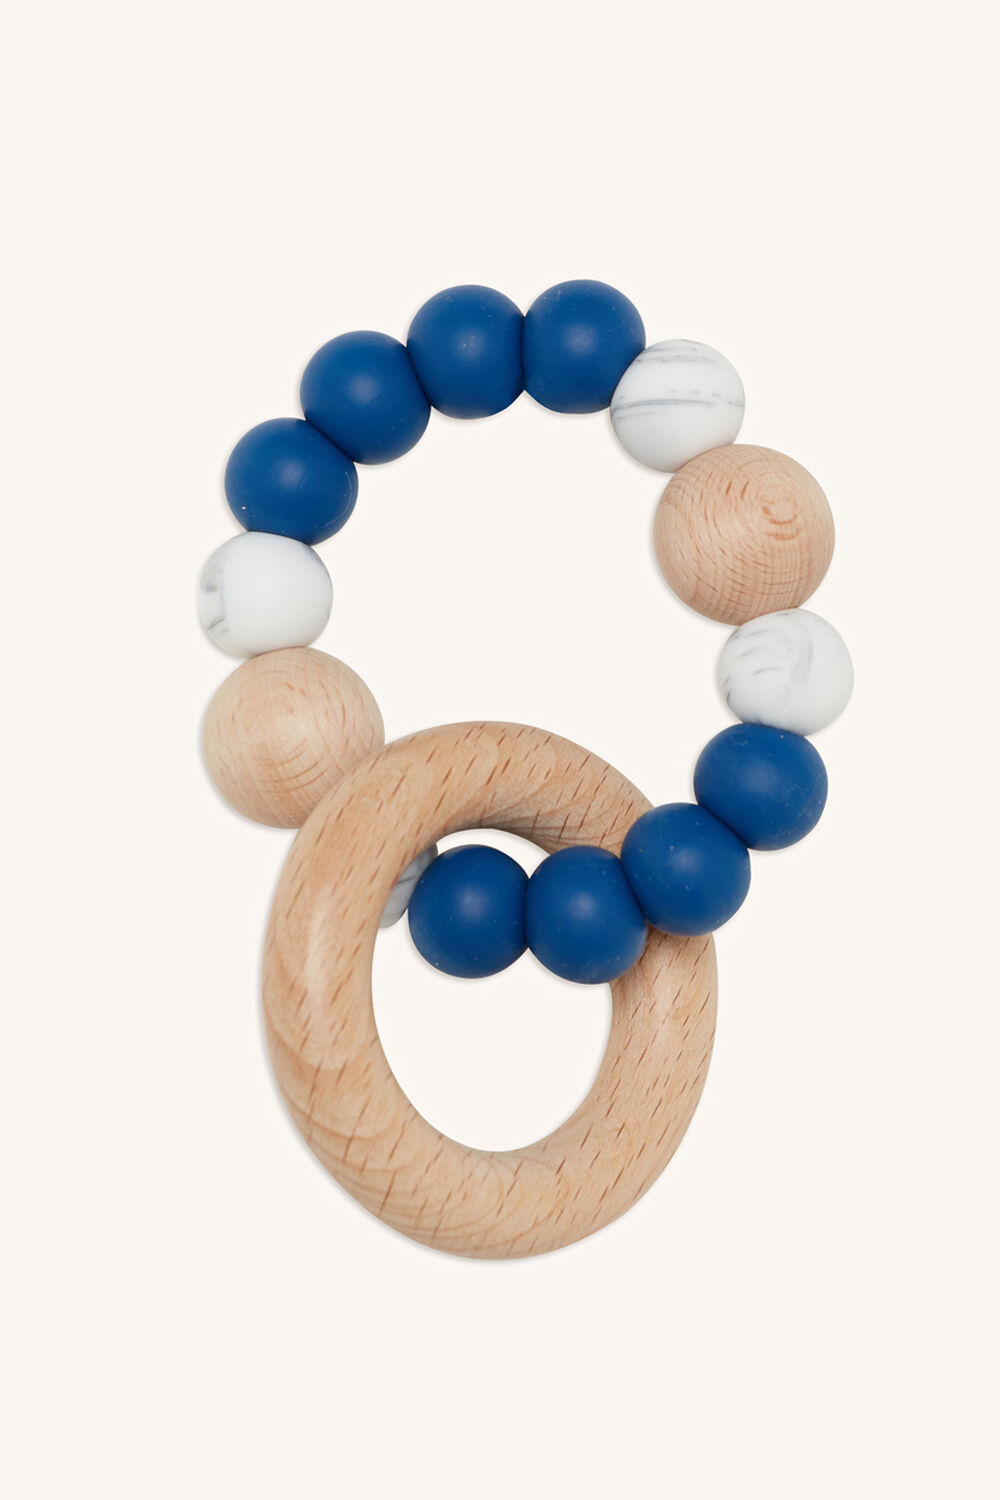 SINGLE RATTLE SILICONE & BEECH in colour BLUE BELL